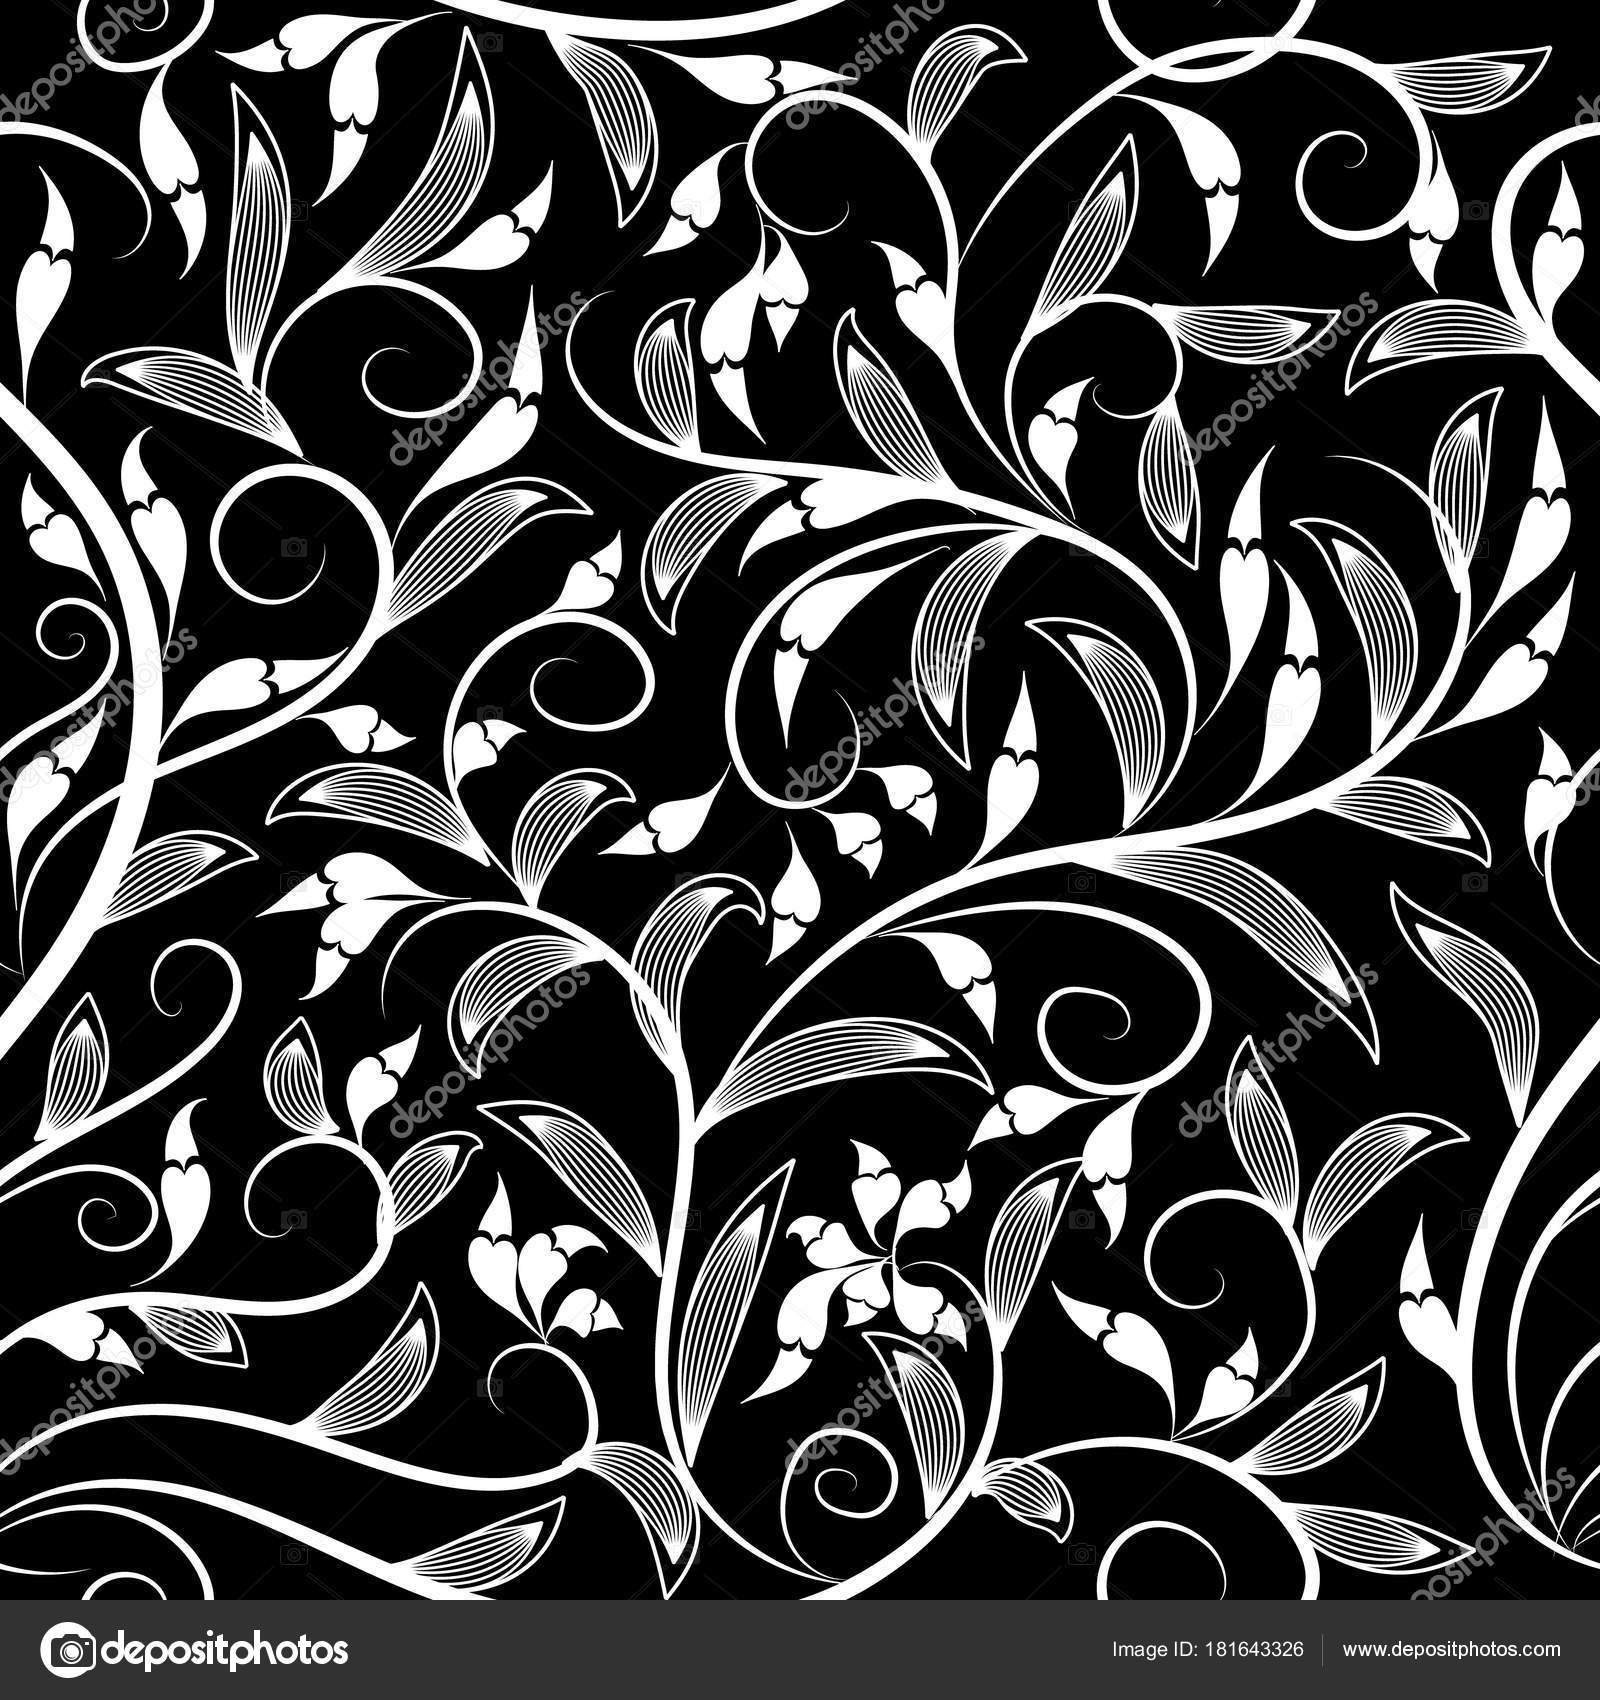 Floral Vector Seamless Pattern Vintage Leafy Black And White Stock